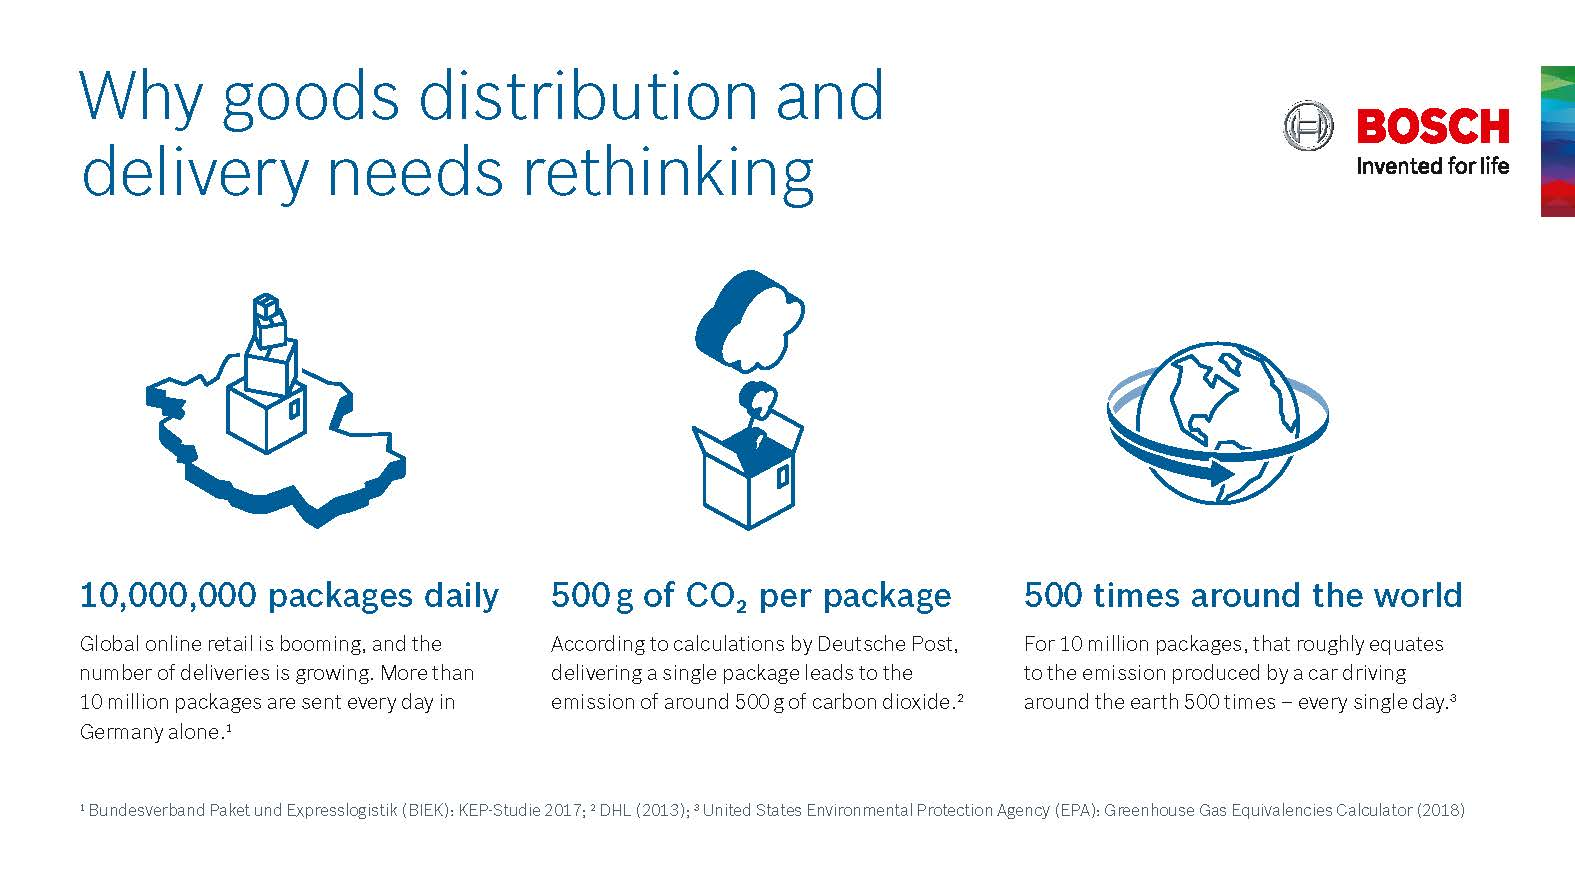 Why goods distribution and delivery needs rethinking